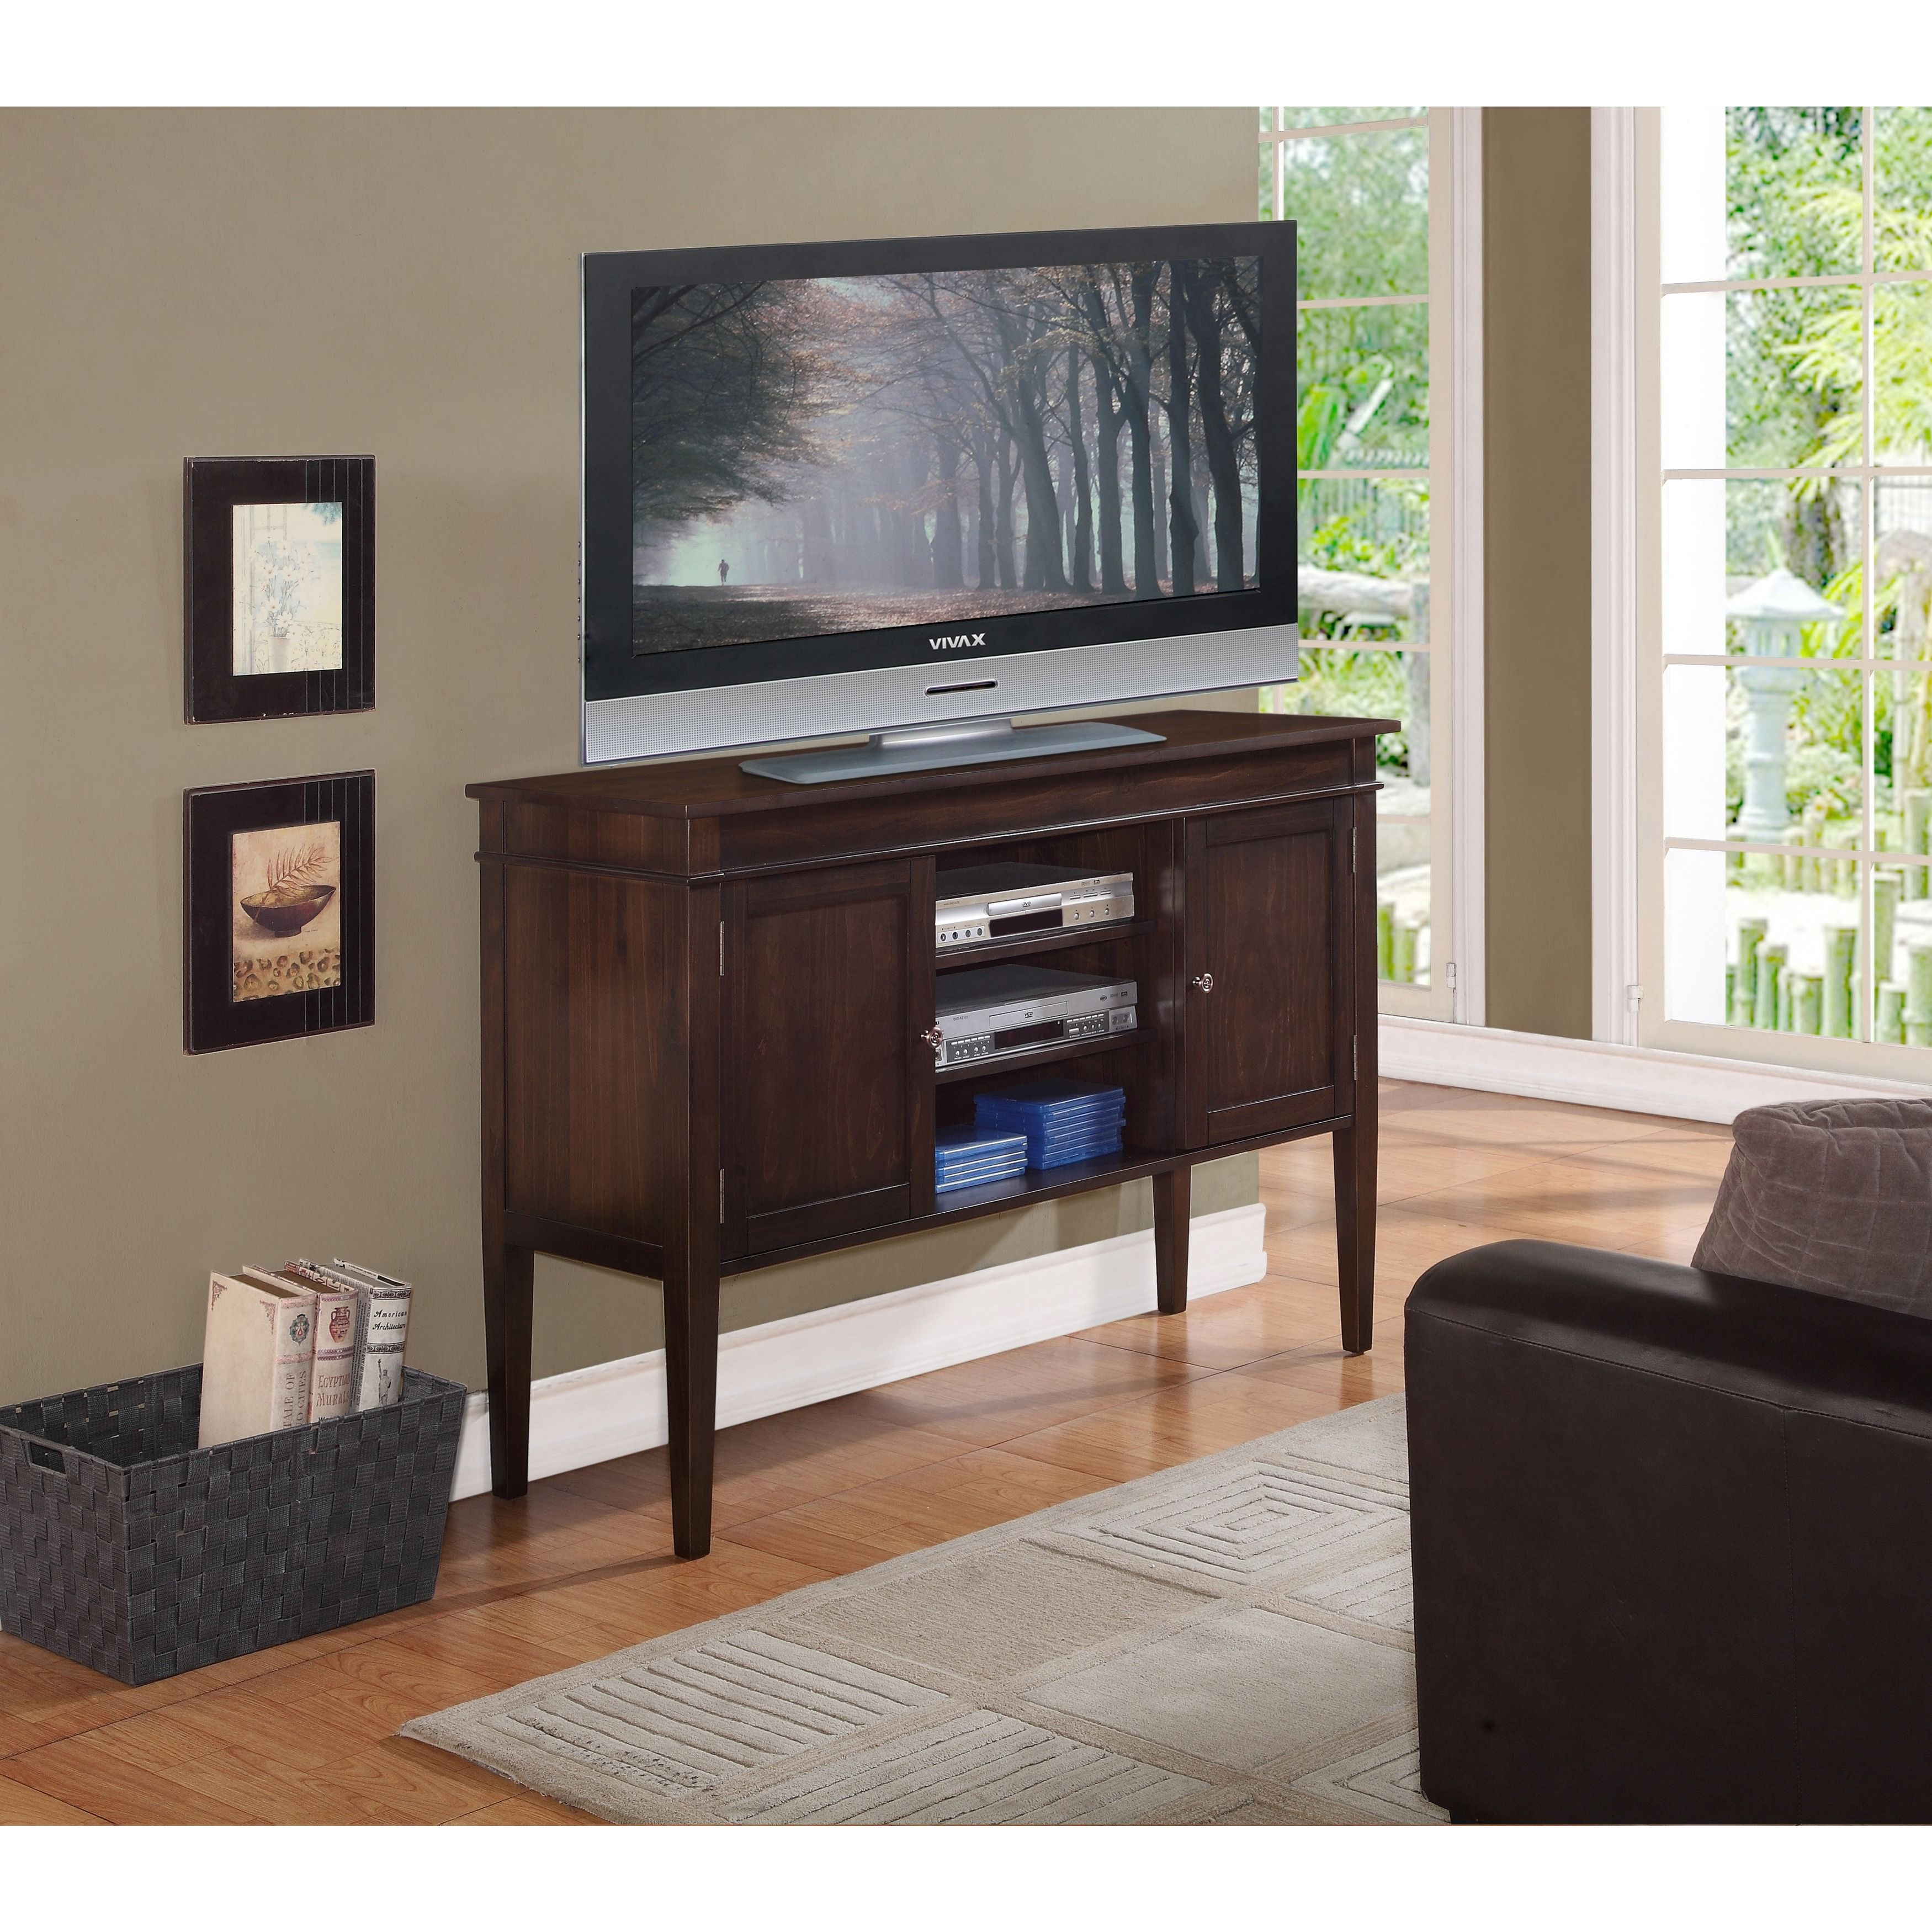 The Richland Collection 54 Inch Wide Tv Media Stand Is An Elegant